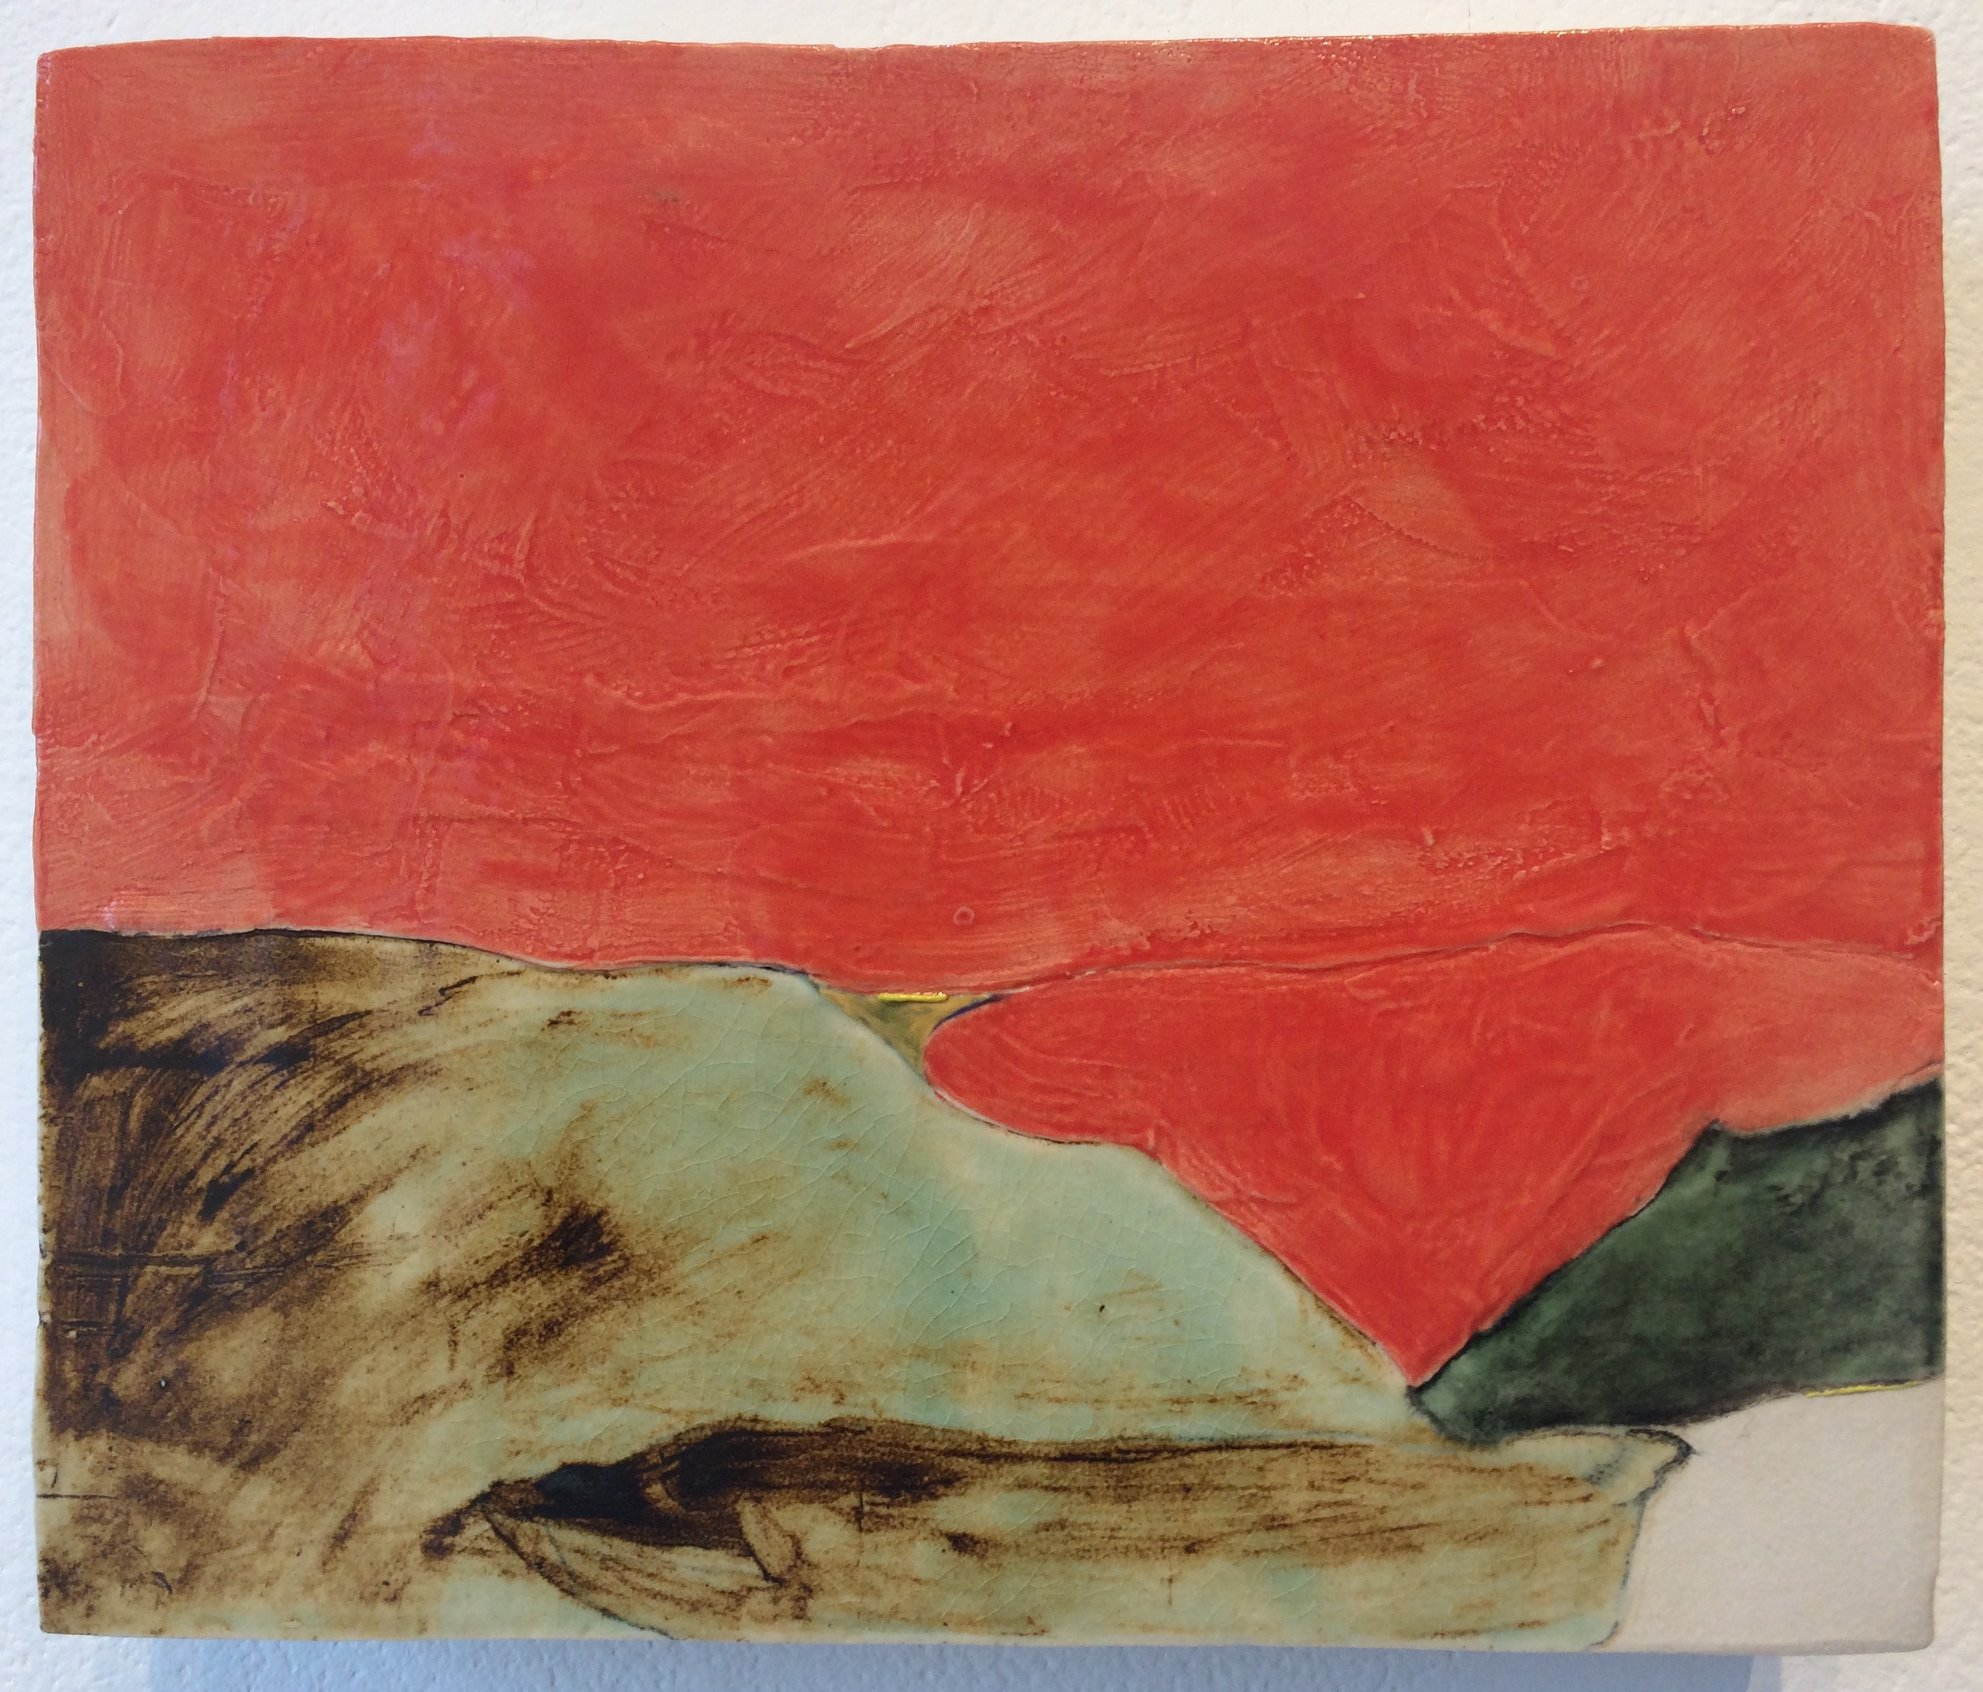 Megan Irving  creates landscapes in clay involving glaze washes and dry point incisions in her unique approach to the medium. Now on view at Roxbury Arts Group.